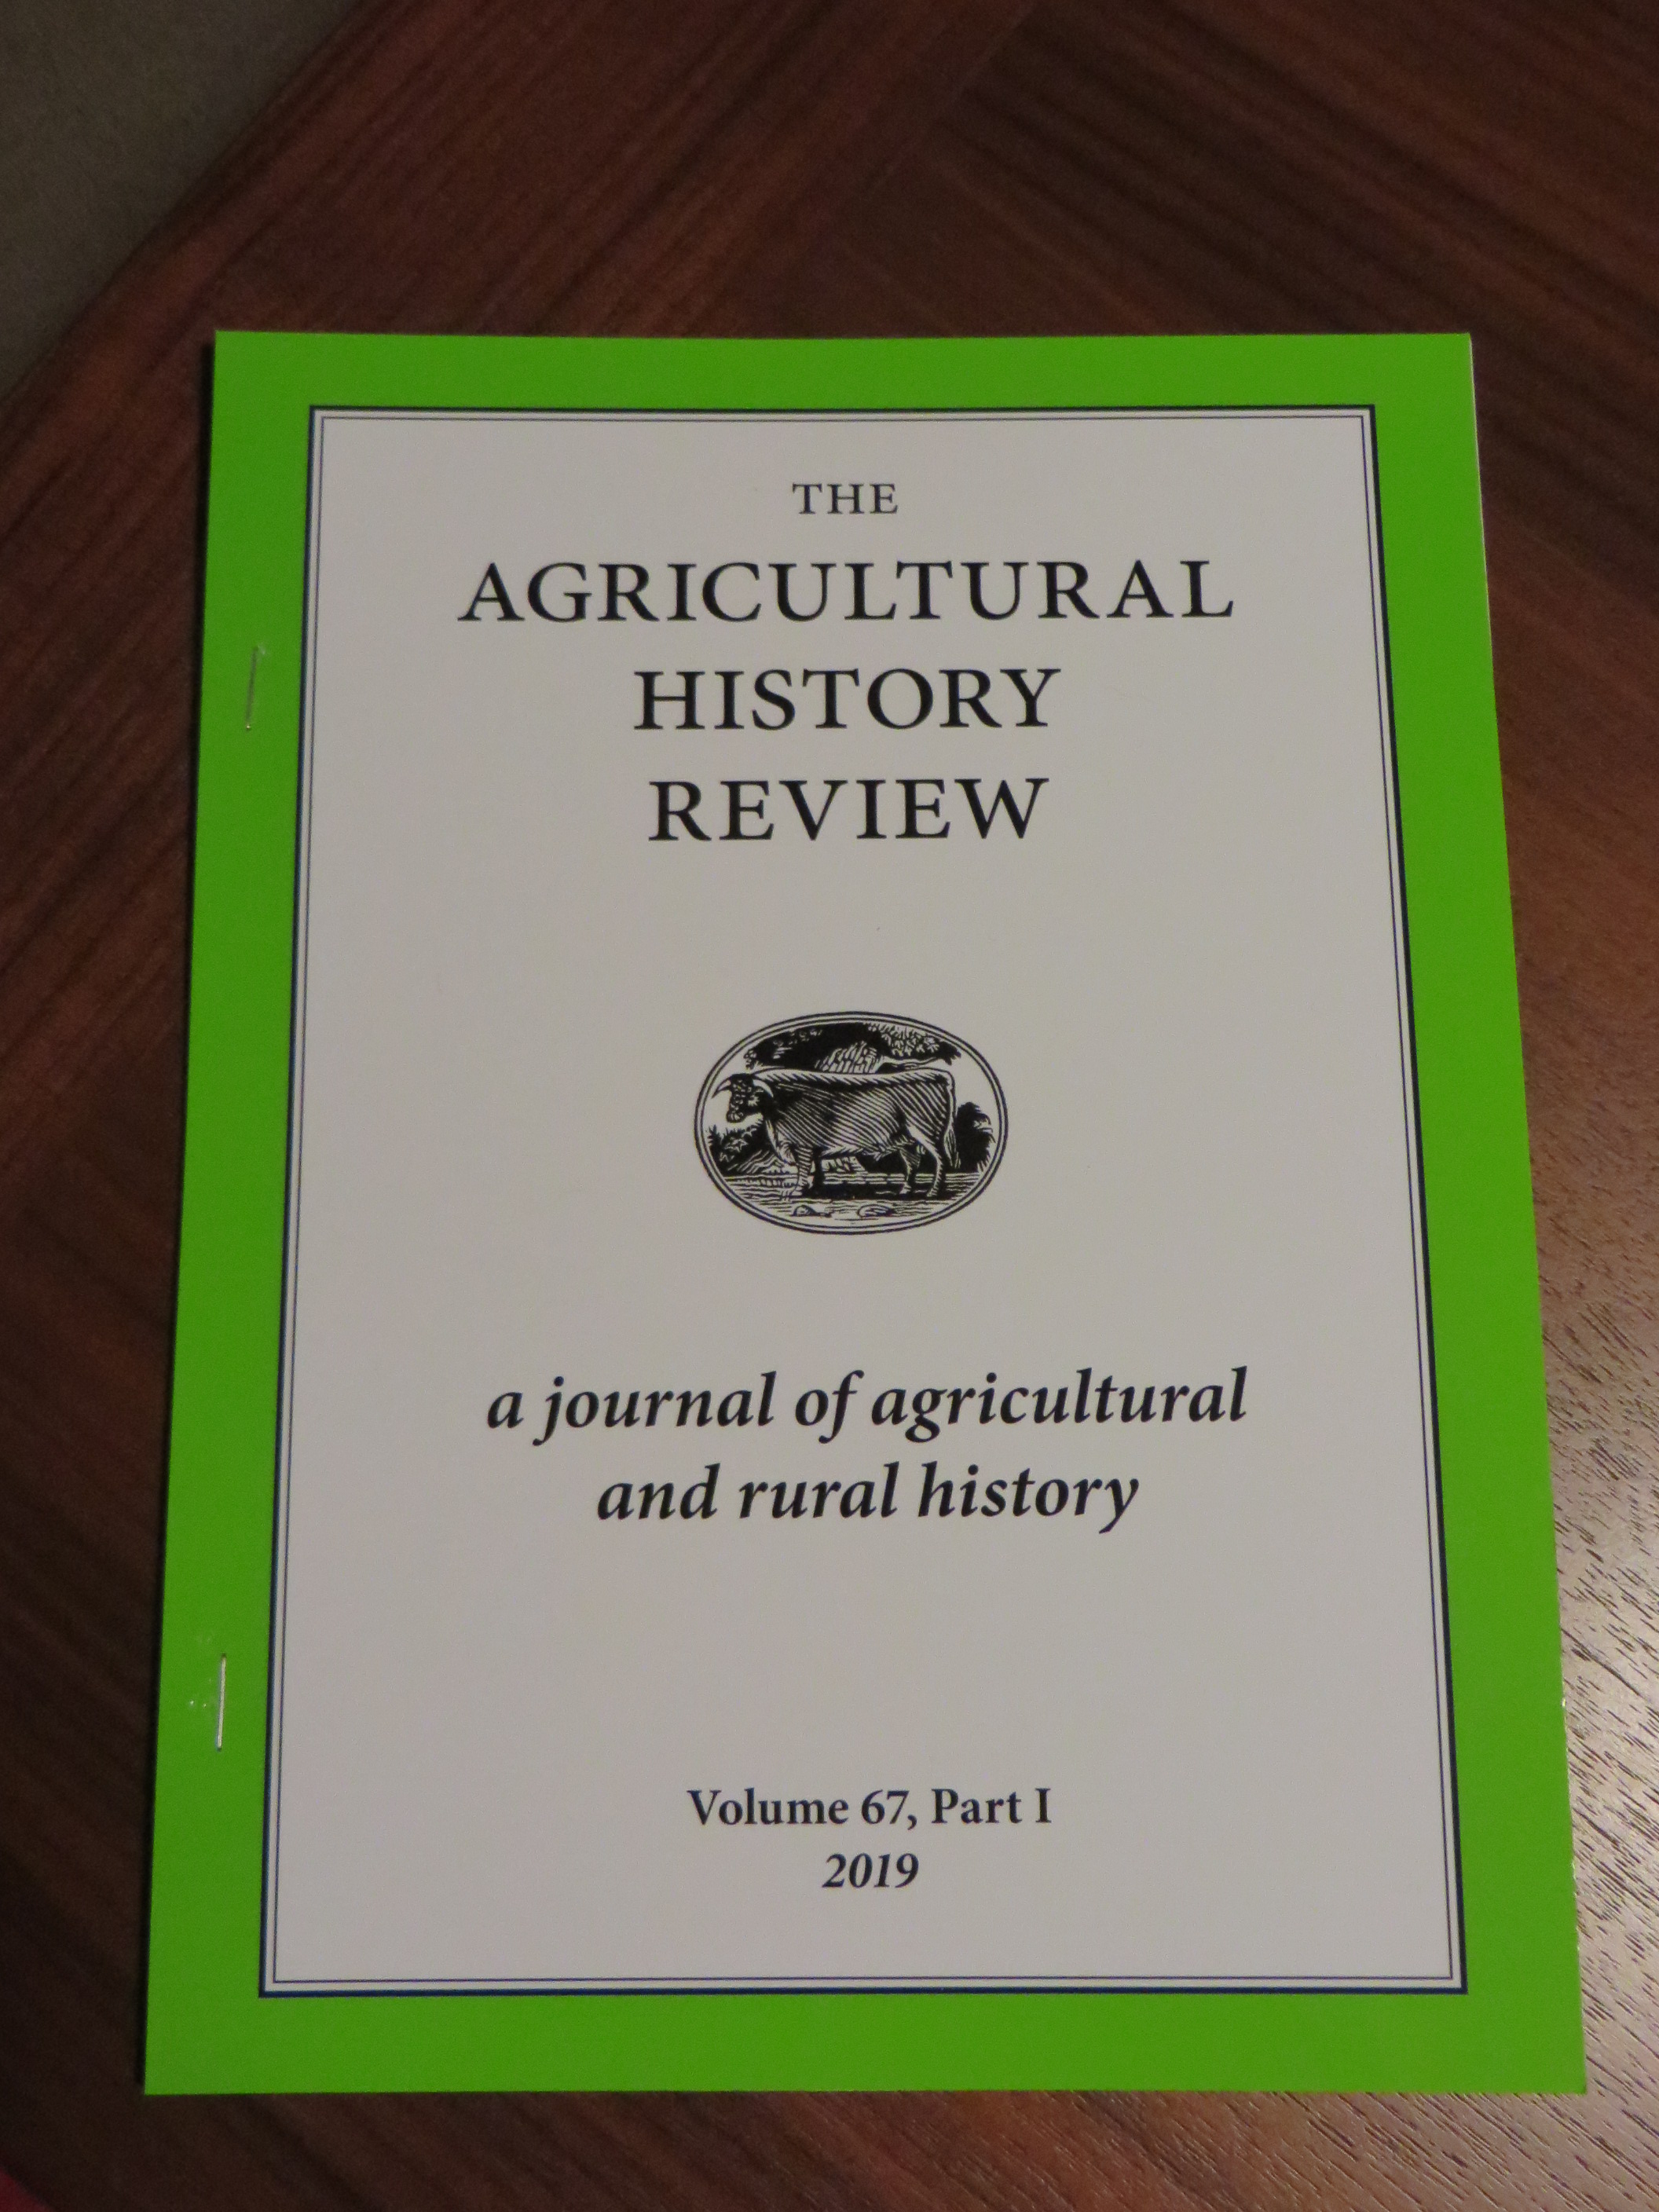 """Offprint of Jonathan Jarrett, """"Outgrowing the Dark Ages: agrarian productivity in Carolingian Europe re-evaluated"""" in Agricultural History Review Vol. 67 (Reading 2019), pp. 1-28"""